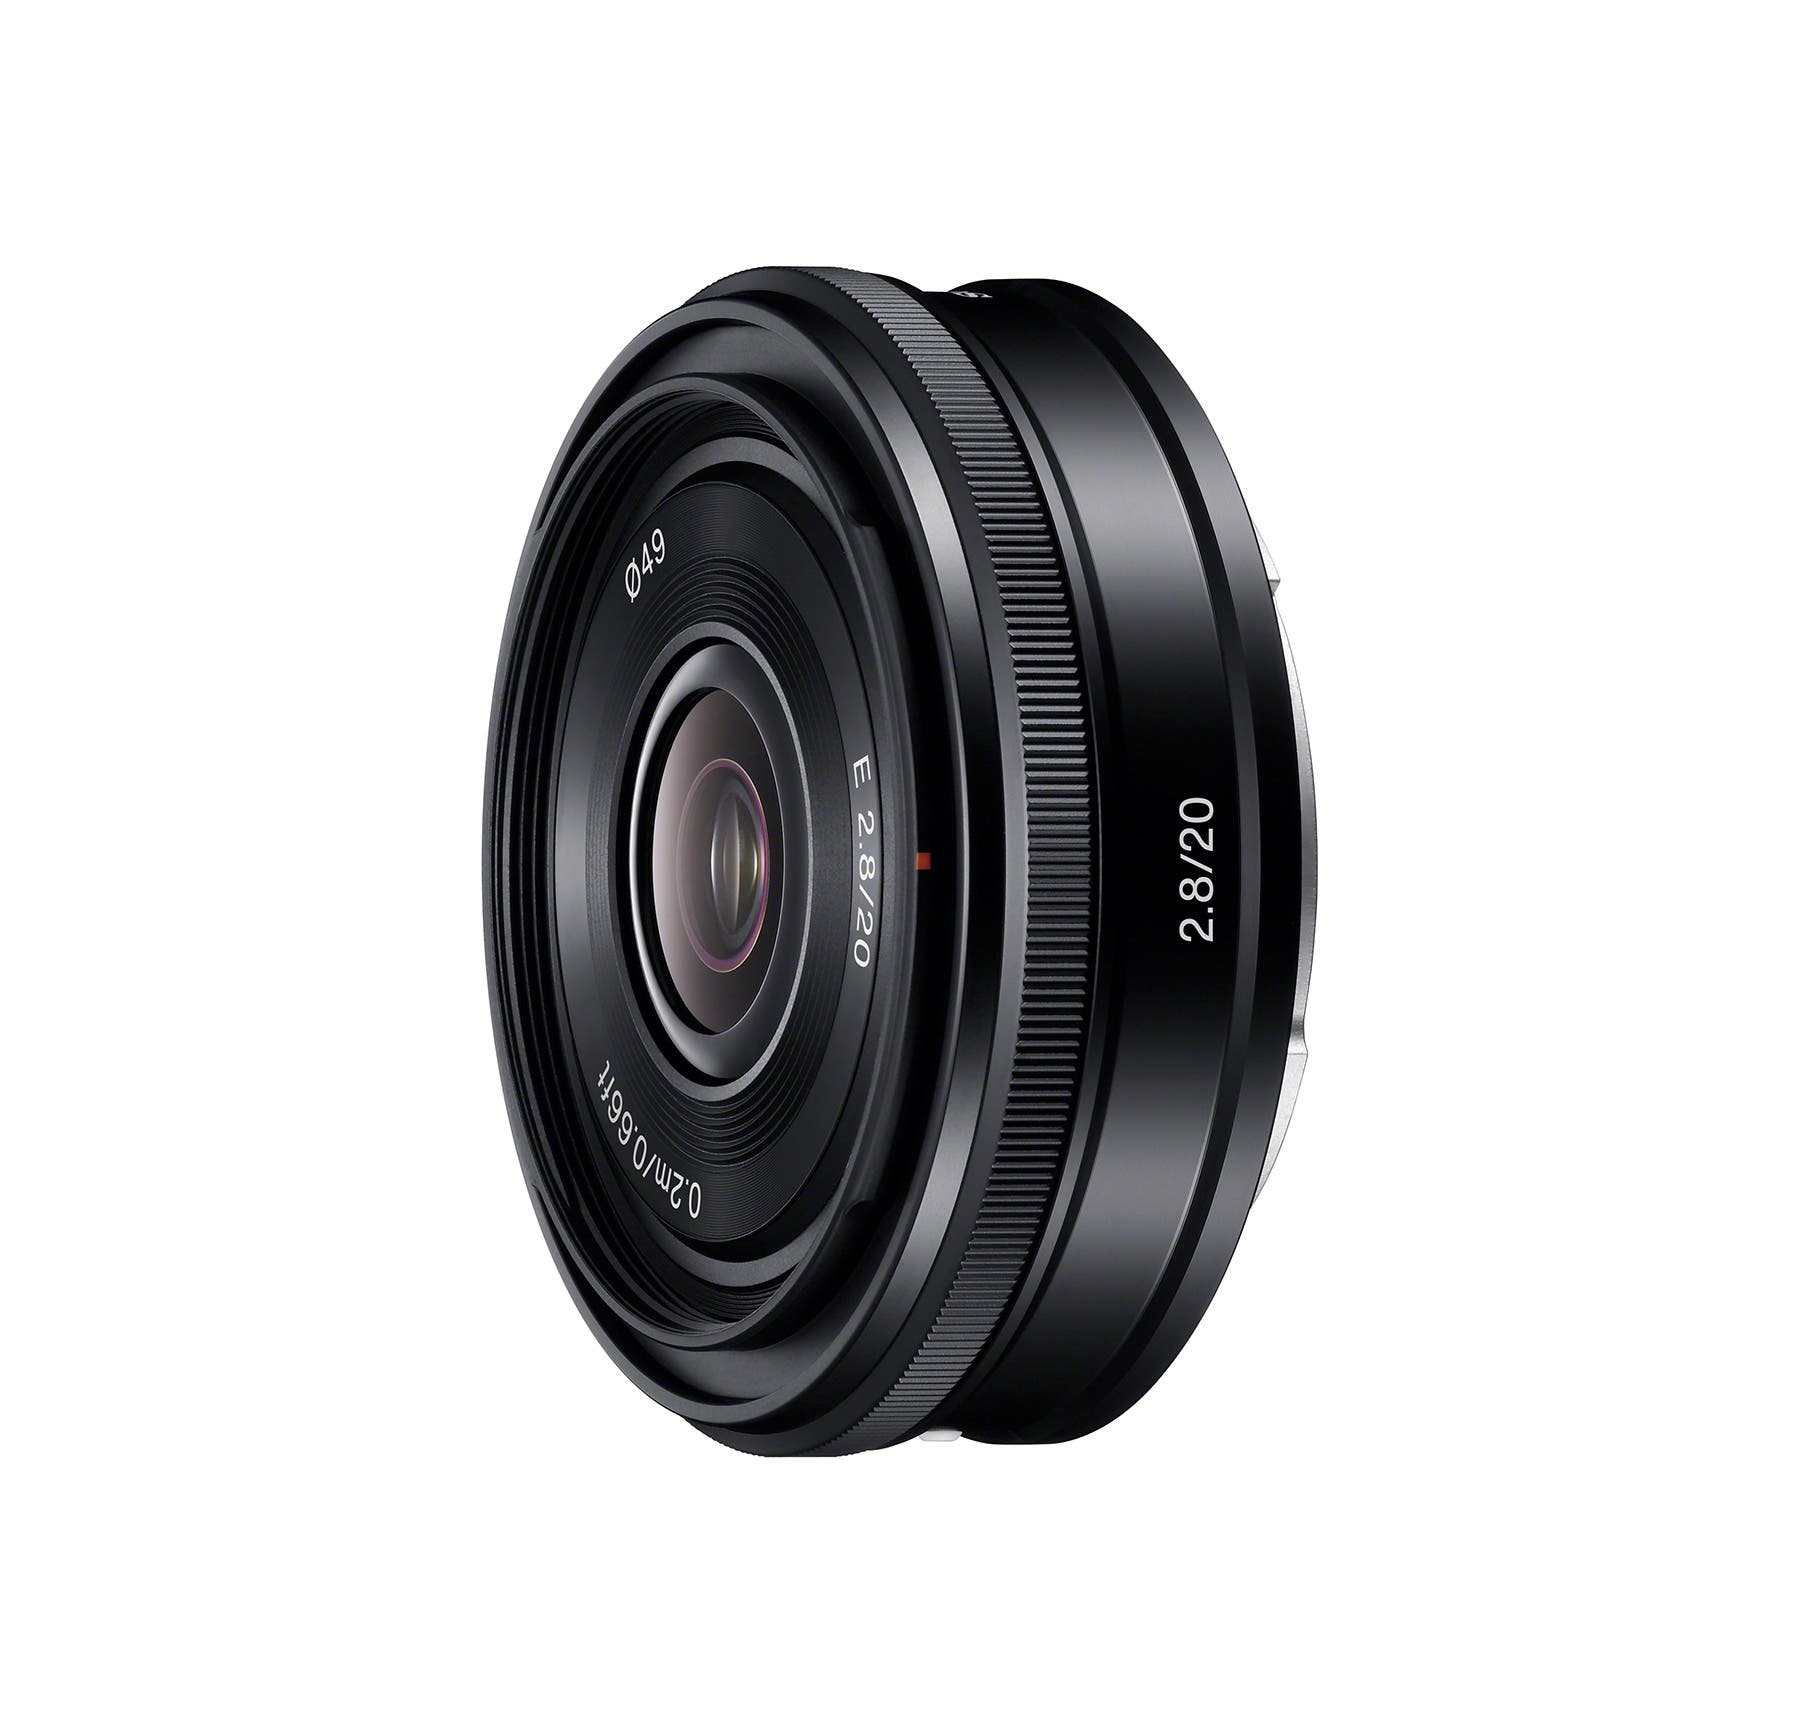 Sony Announces a New Pancake for NEX: 20mm f2.8